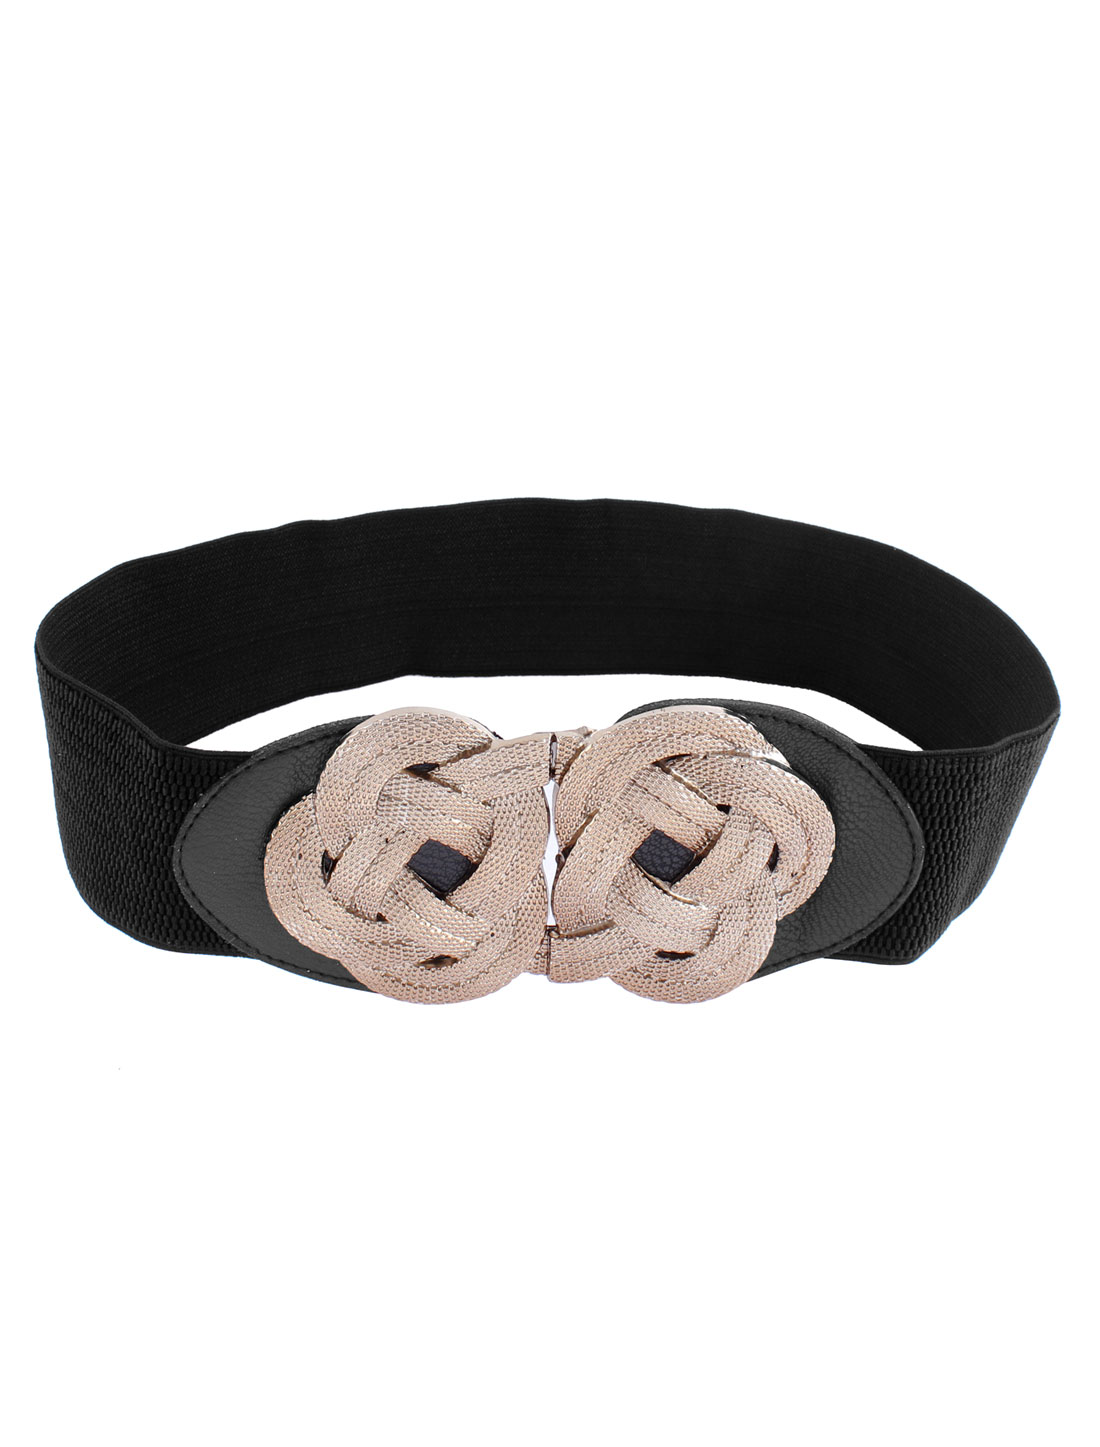 Women Gold Tone Metal Flower Knot Interlock Buckle Elastic Waist Band Belt Black